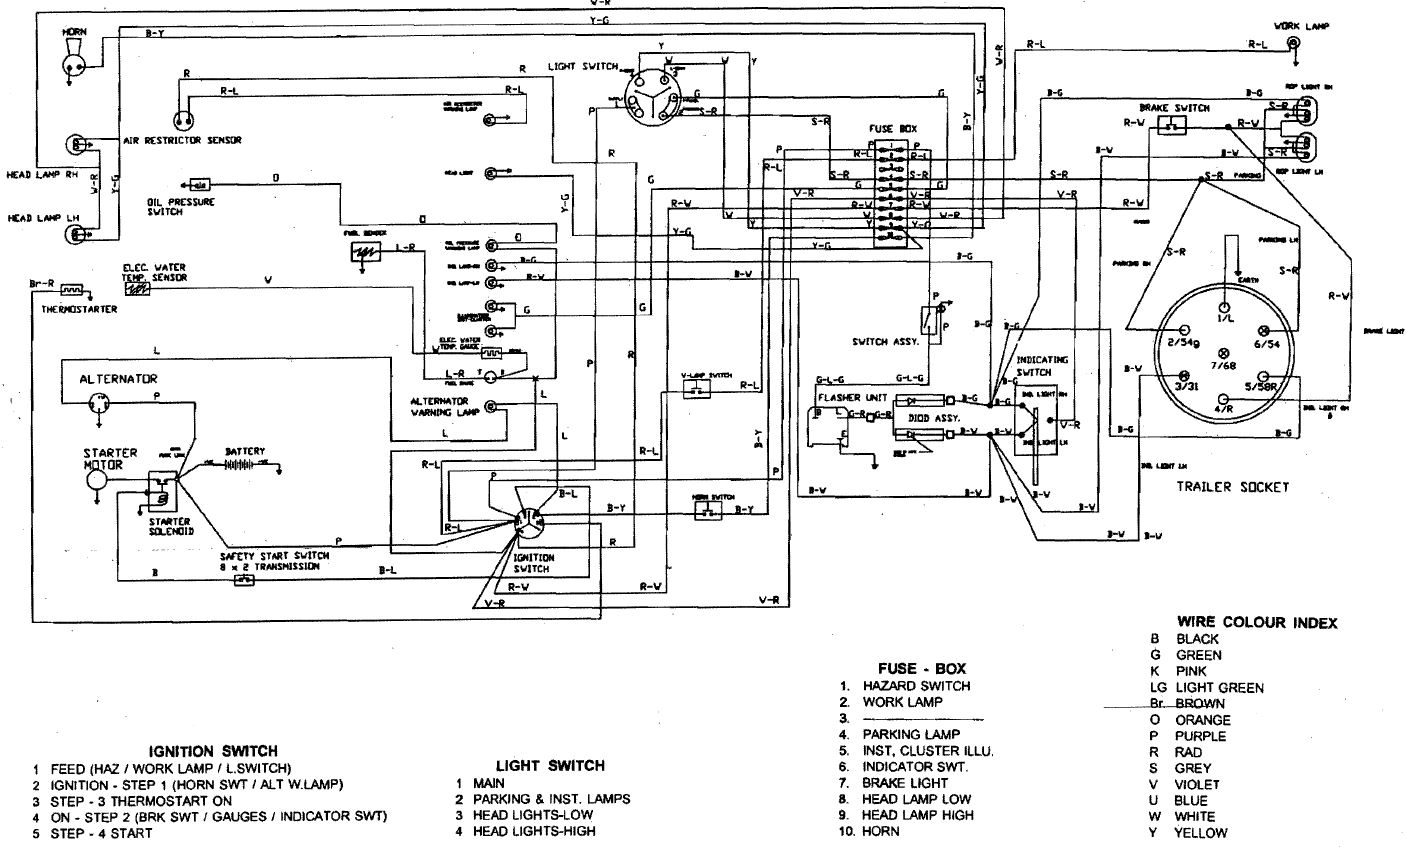 20158463319_b82d524c3d_o ignition switch wiring diagram John Deere Ignition Wiring Diagram at creativeand.co